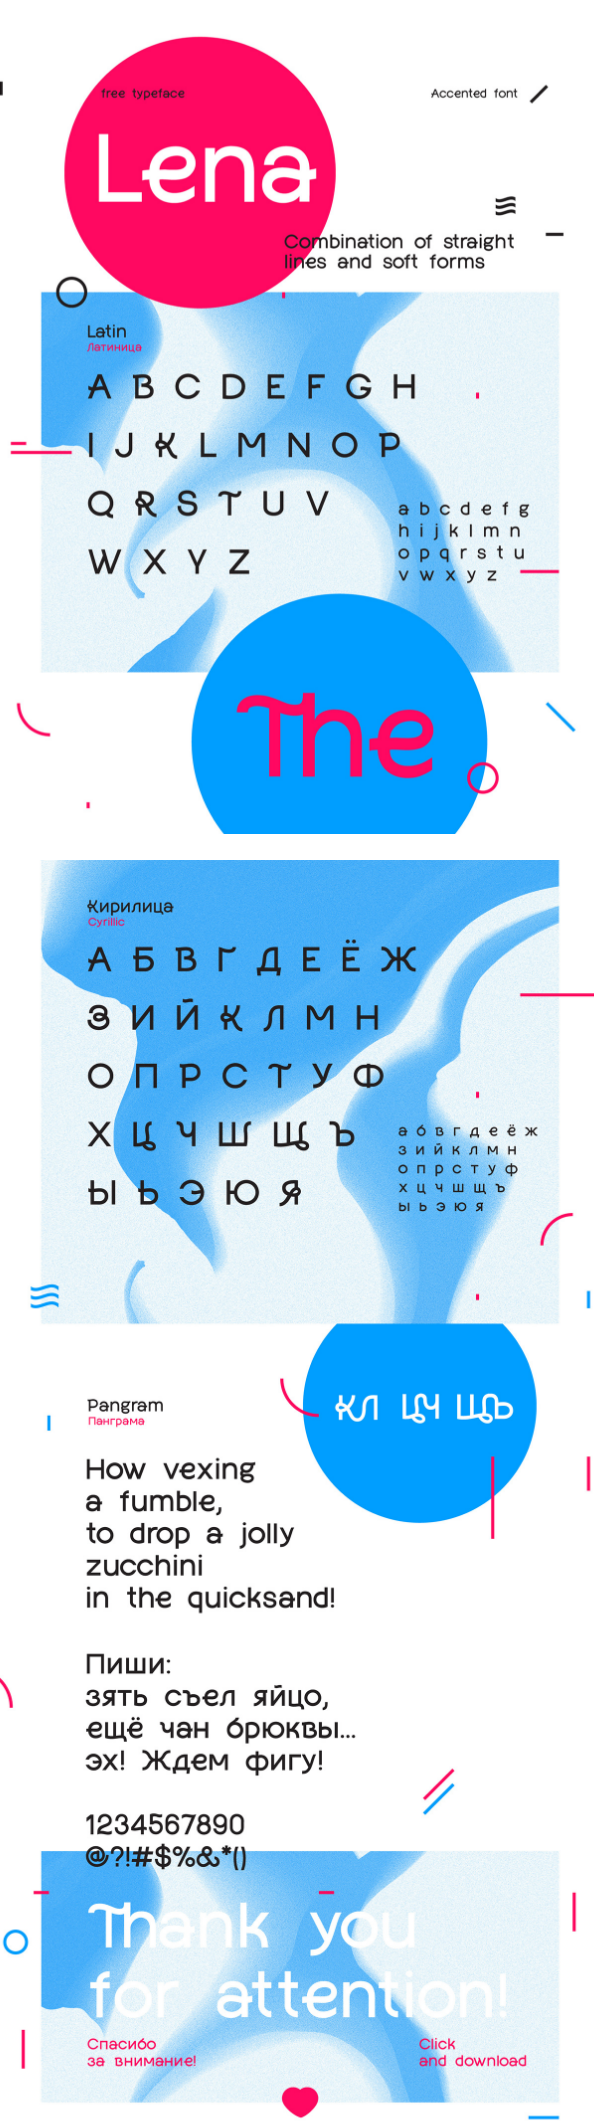 Lena Free Font Download - Engine Templates